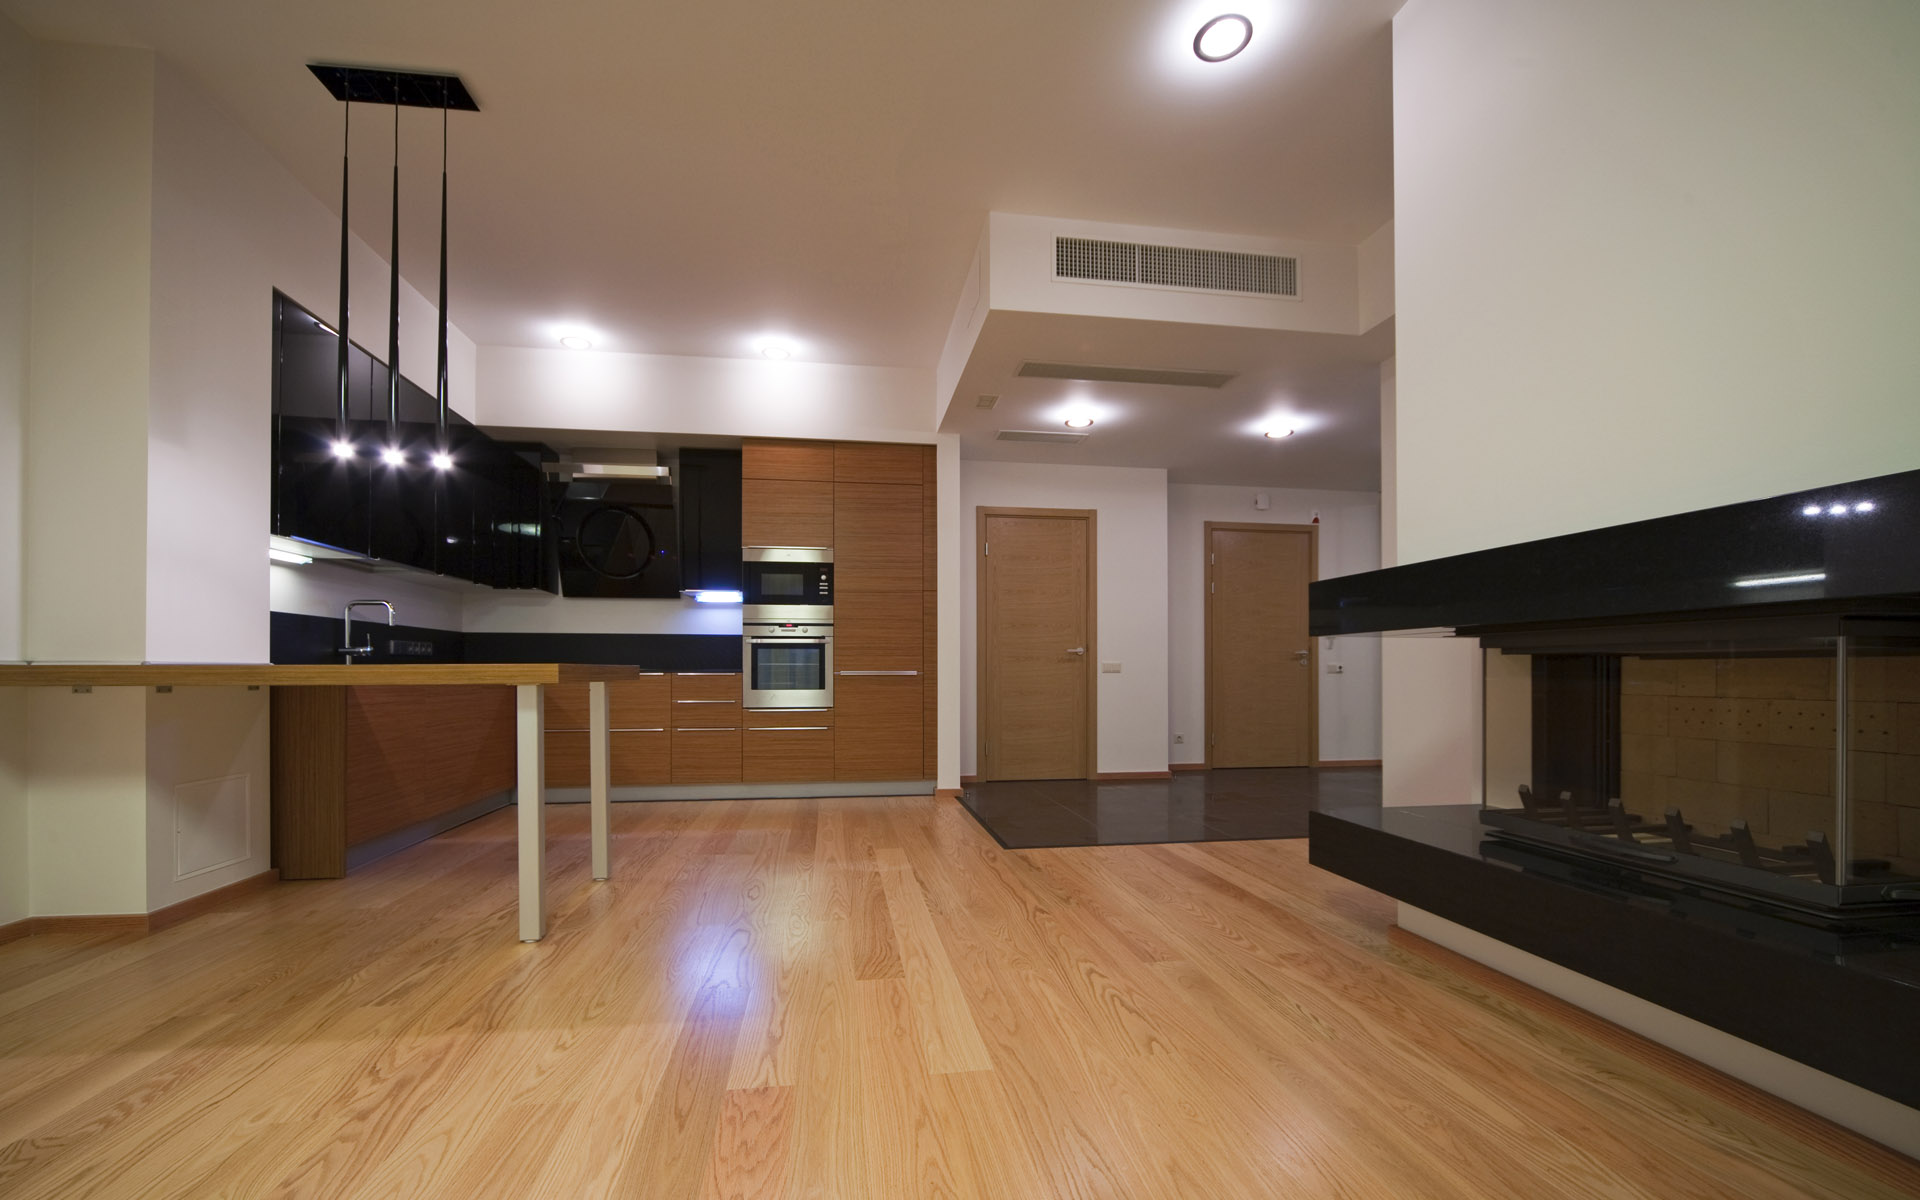 1920 1200 for Free interior design images